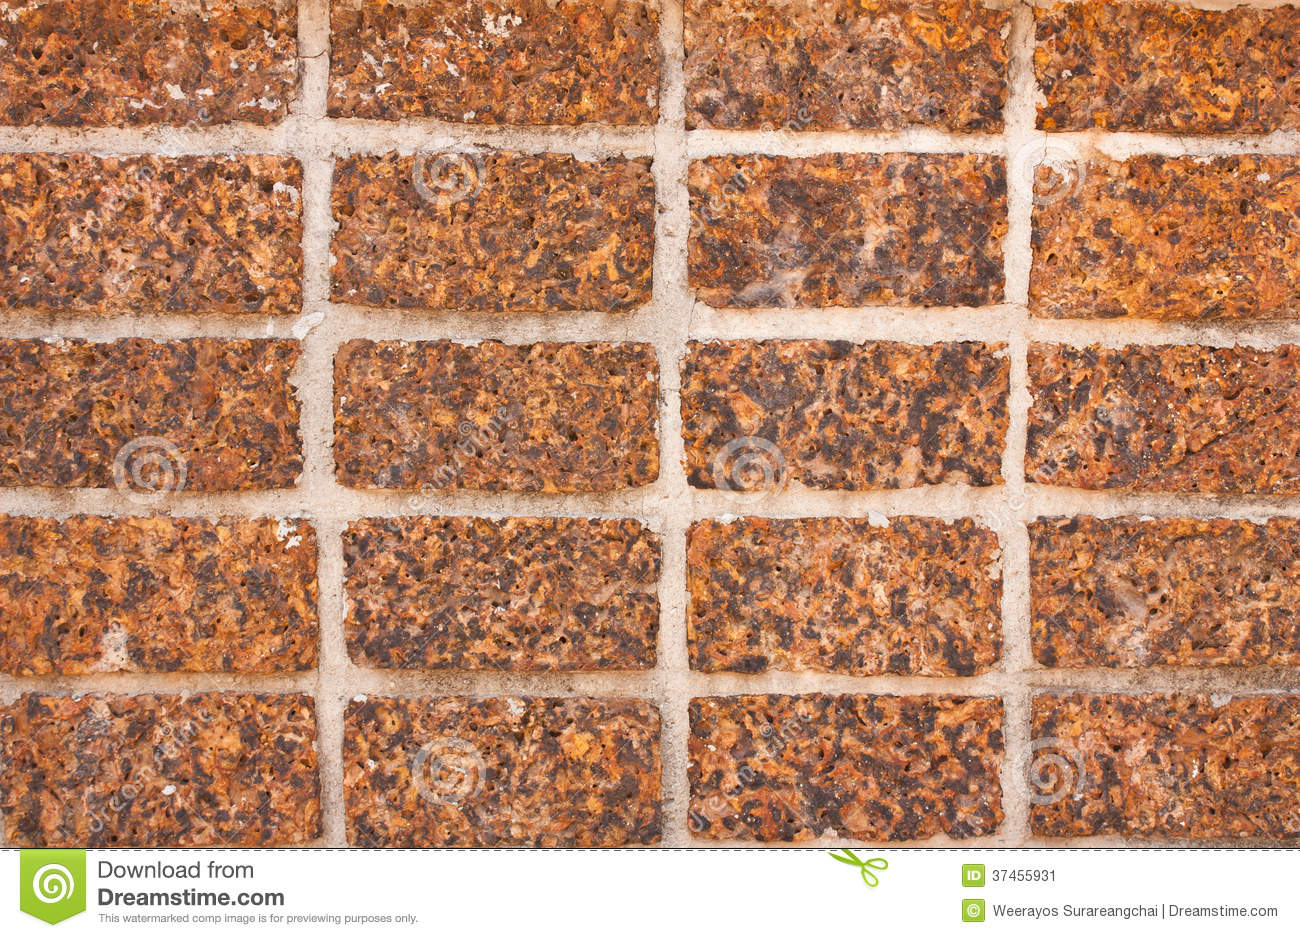 Laterite stone brick wall stock images image 35510874 - Laterite Stone Brick Wall Stock Image